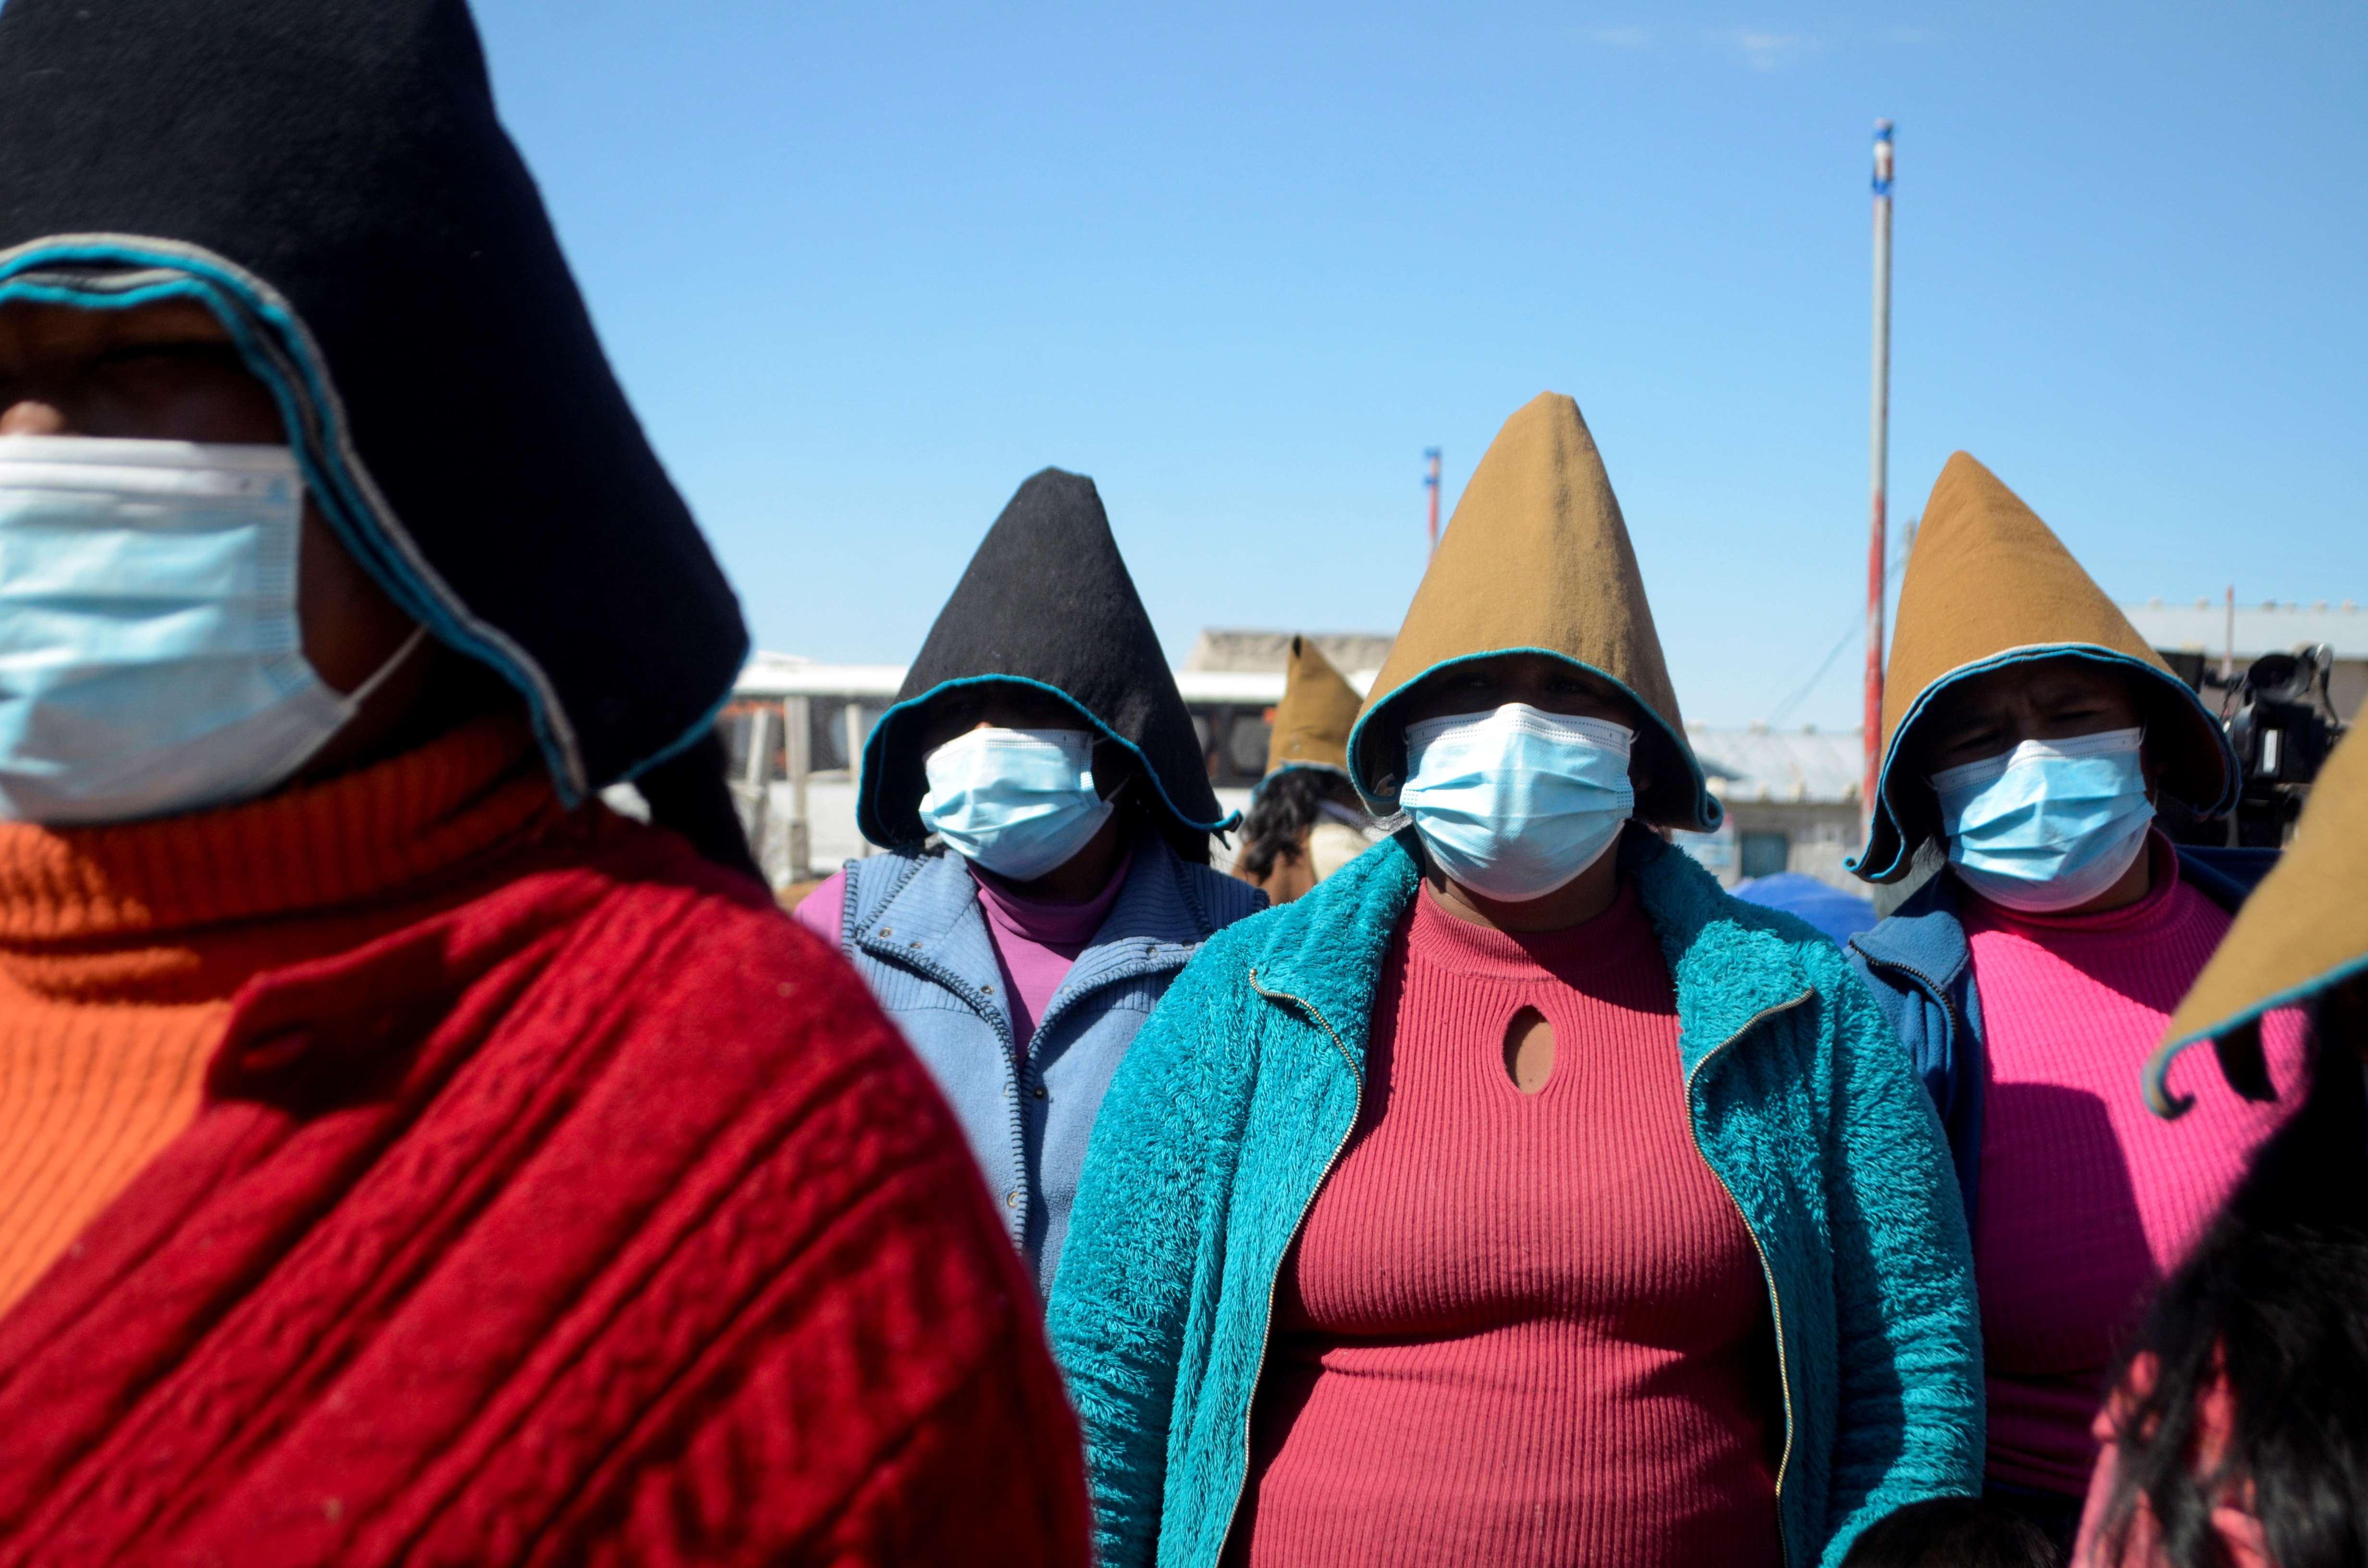 Women stand together while listening to a speaker at a health fair as others had been waiting to get vaccinated against the coronavirus disease (COVID-19), in Uru Chipaya, Bolivia July 23, 2021. REUTERS/Claudia Morales